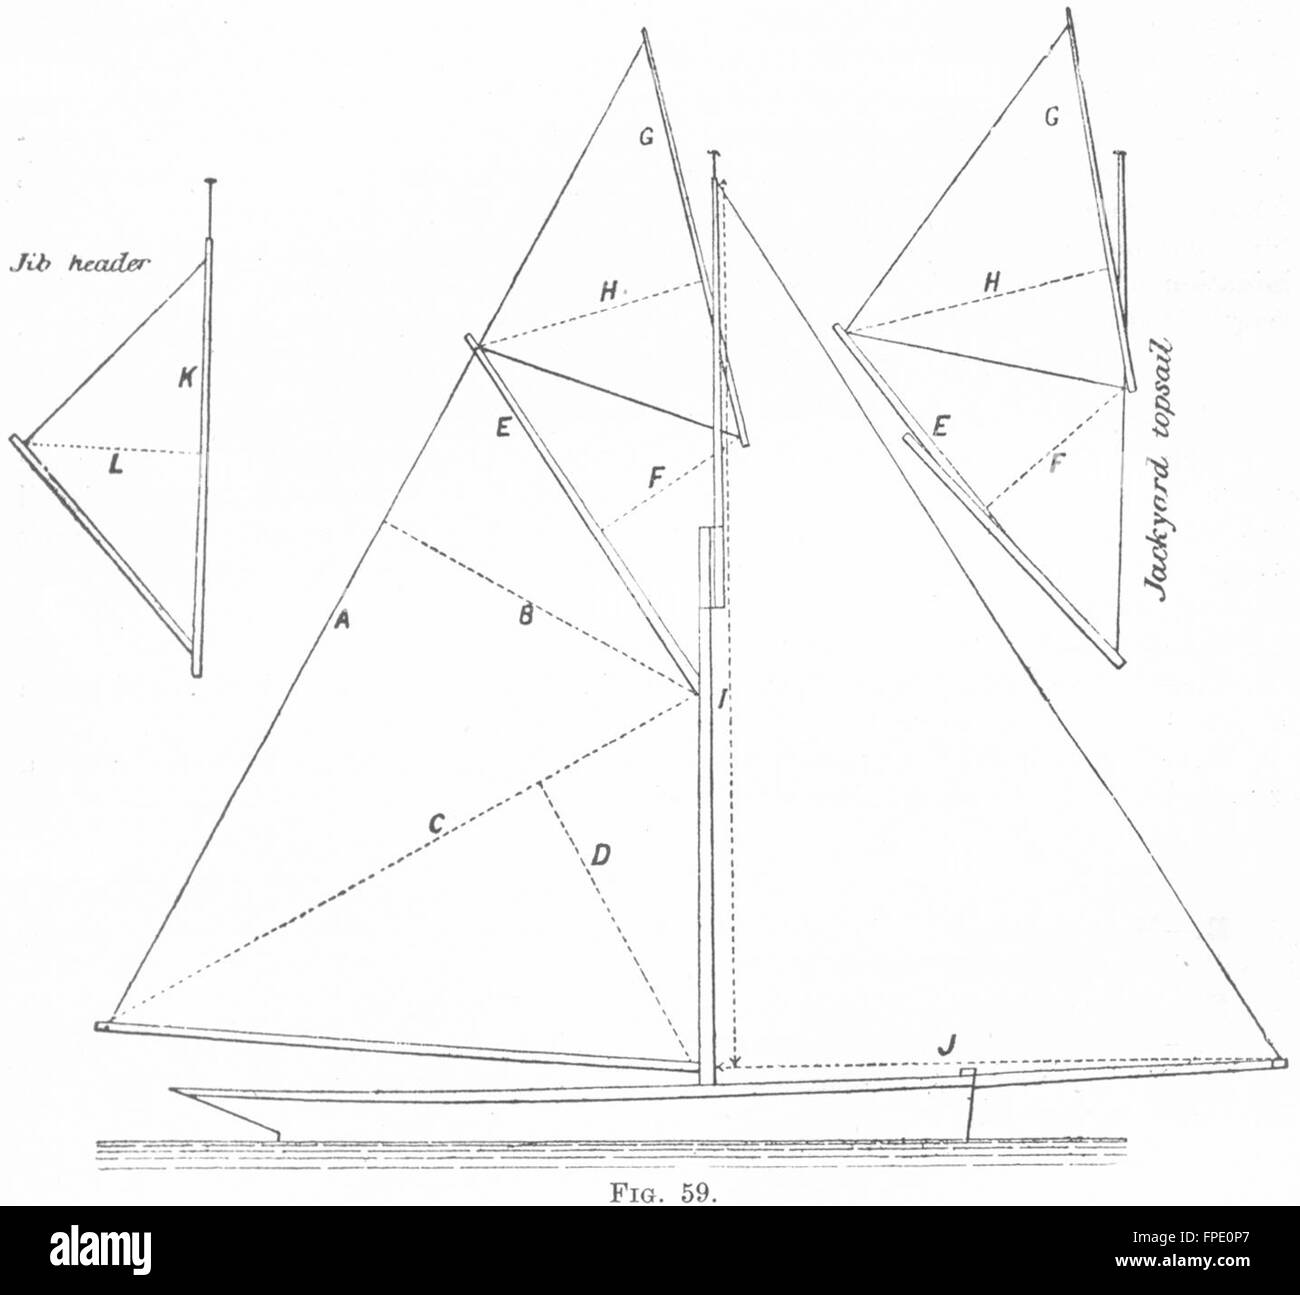 hight resolution of yacht racing rules measurement for rating antique print 1891 stock image